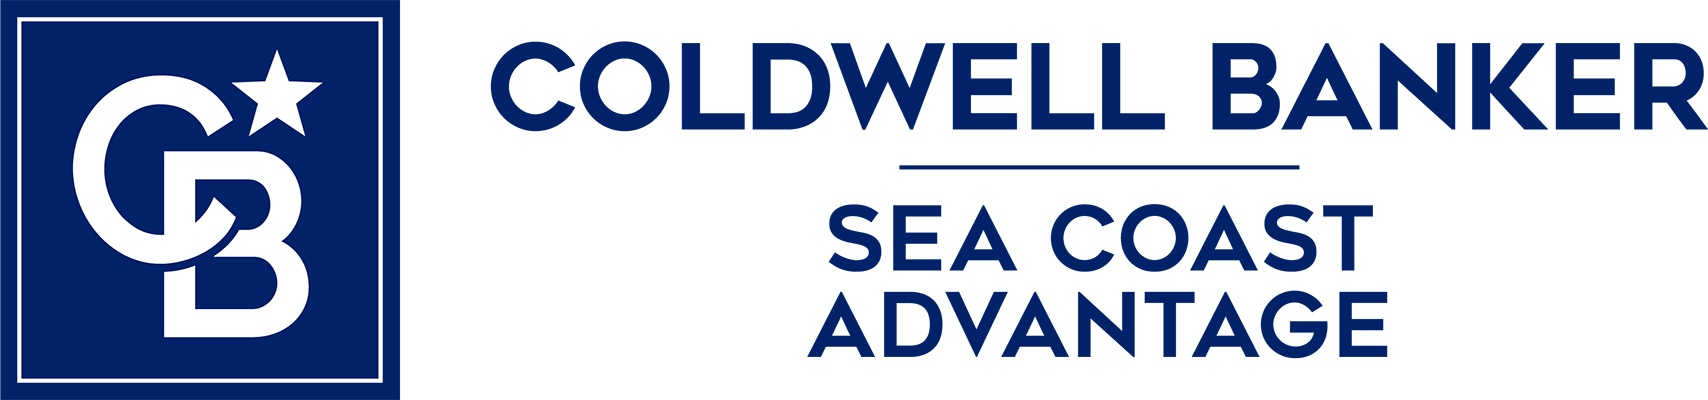 John Byrnes - Coldwell Banker Sea Coast Advantage Realty